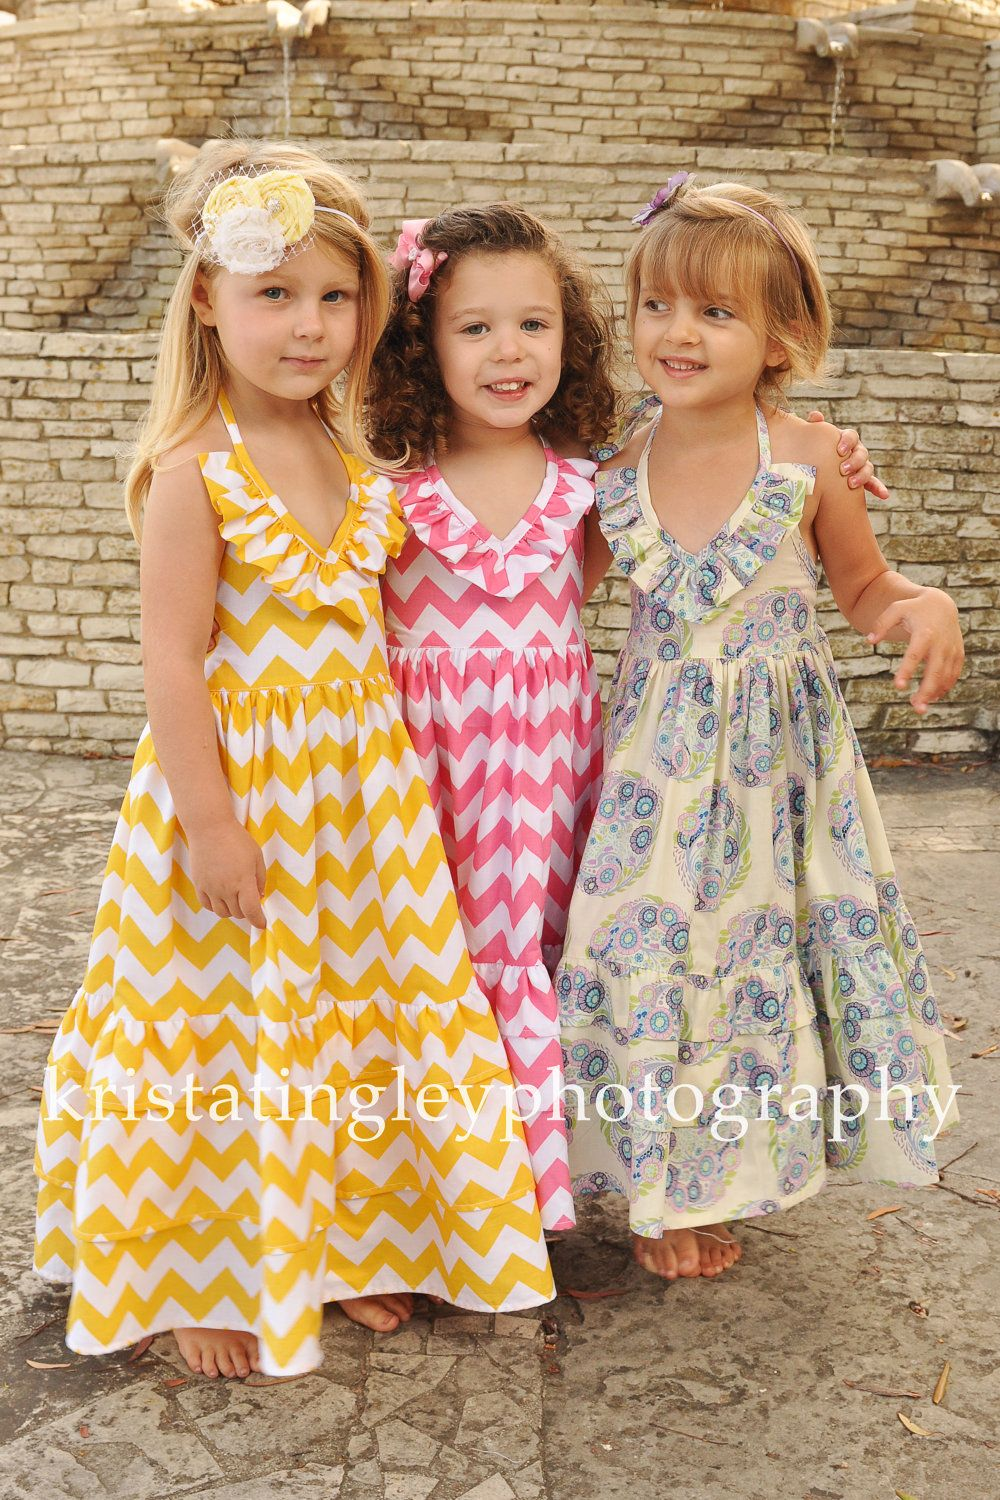 The one on the right salethe kate olivia ruffled maxi dress